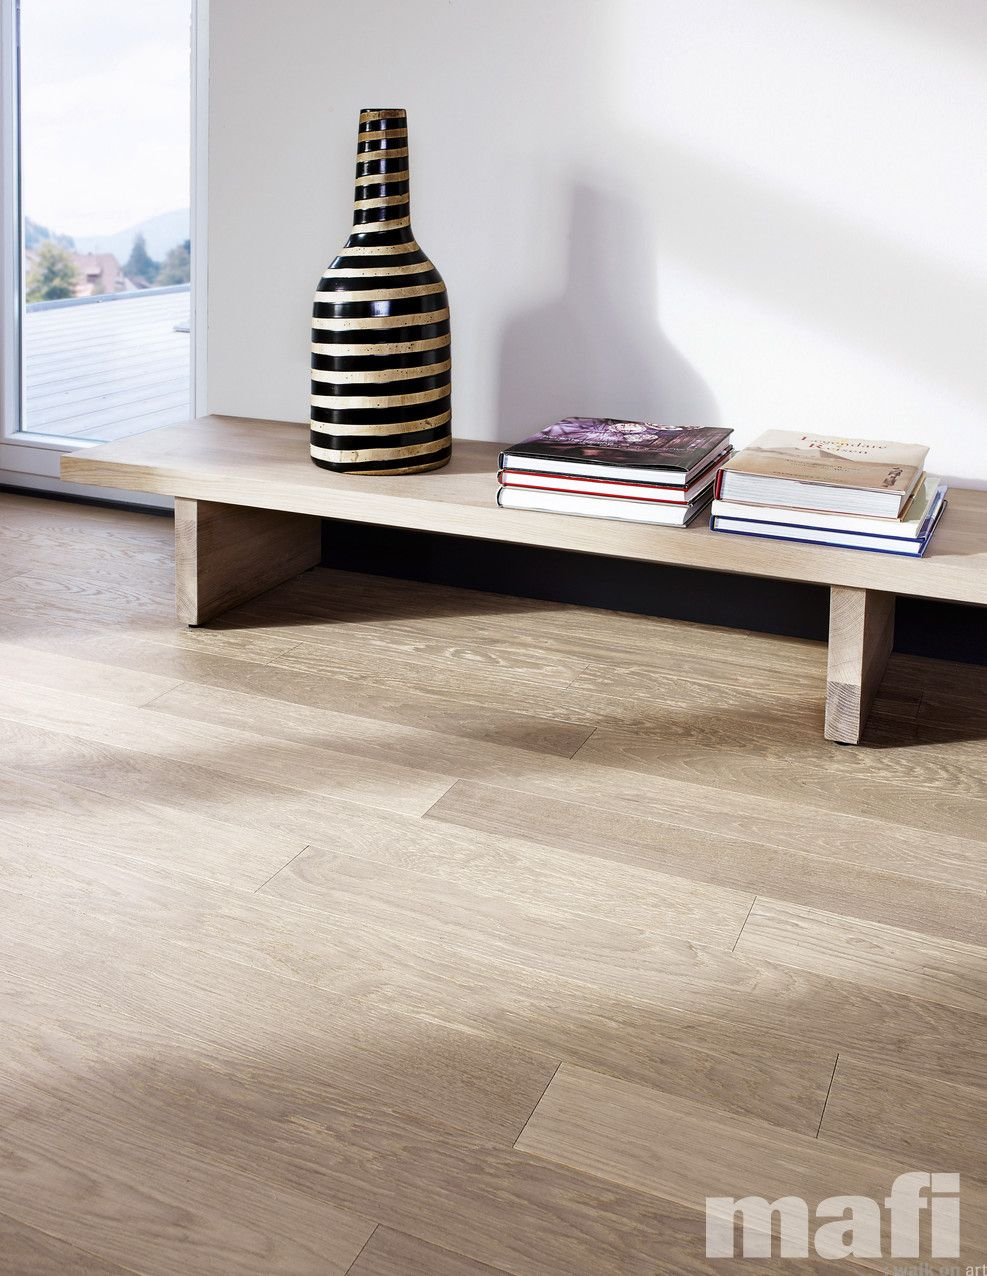 OAK Piccolino OAK in compact multilayer structure with all